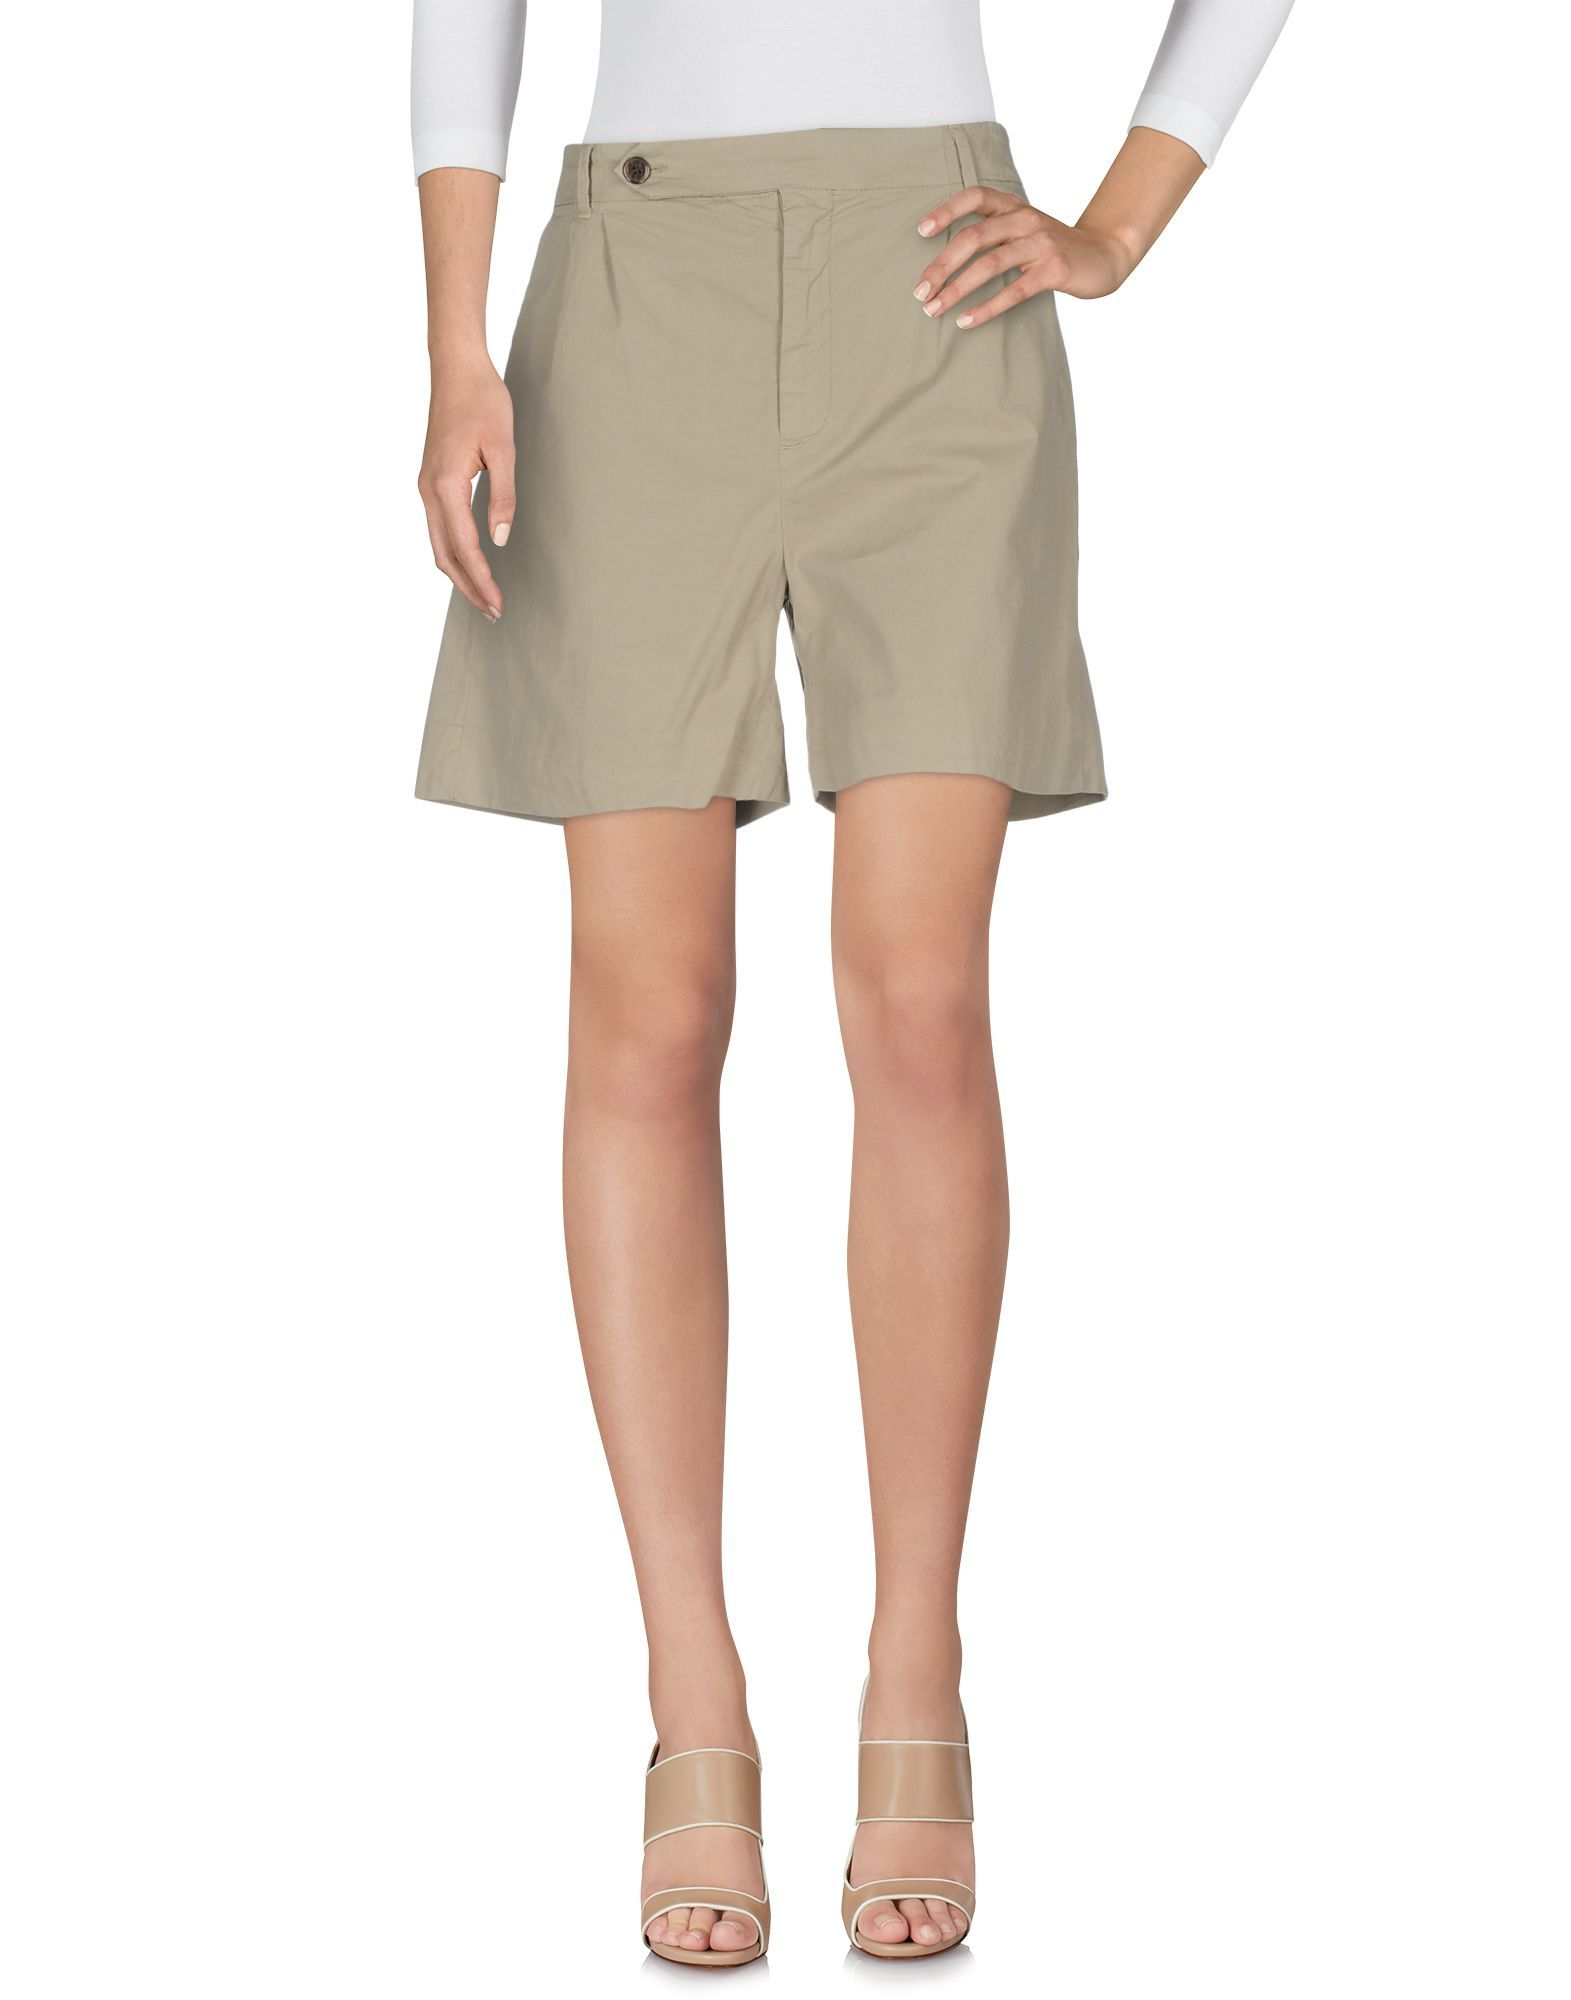 True Nyc� Sand Cotton Shorts